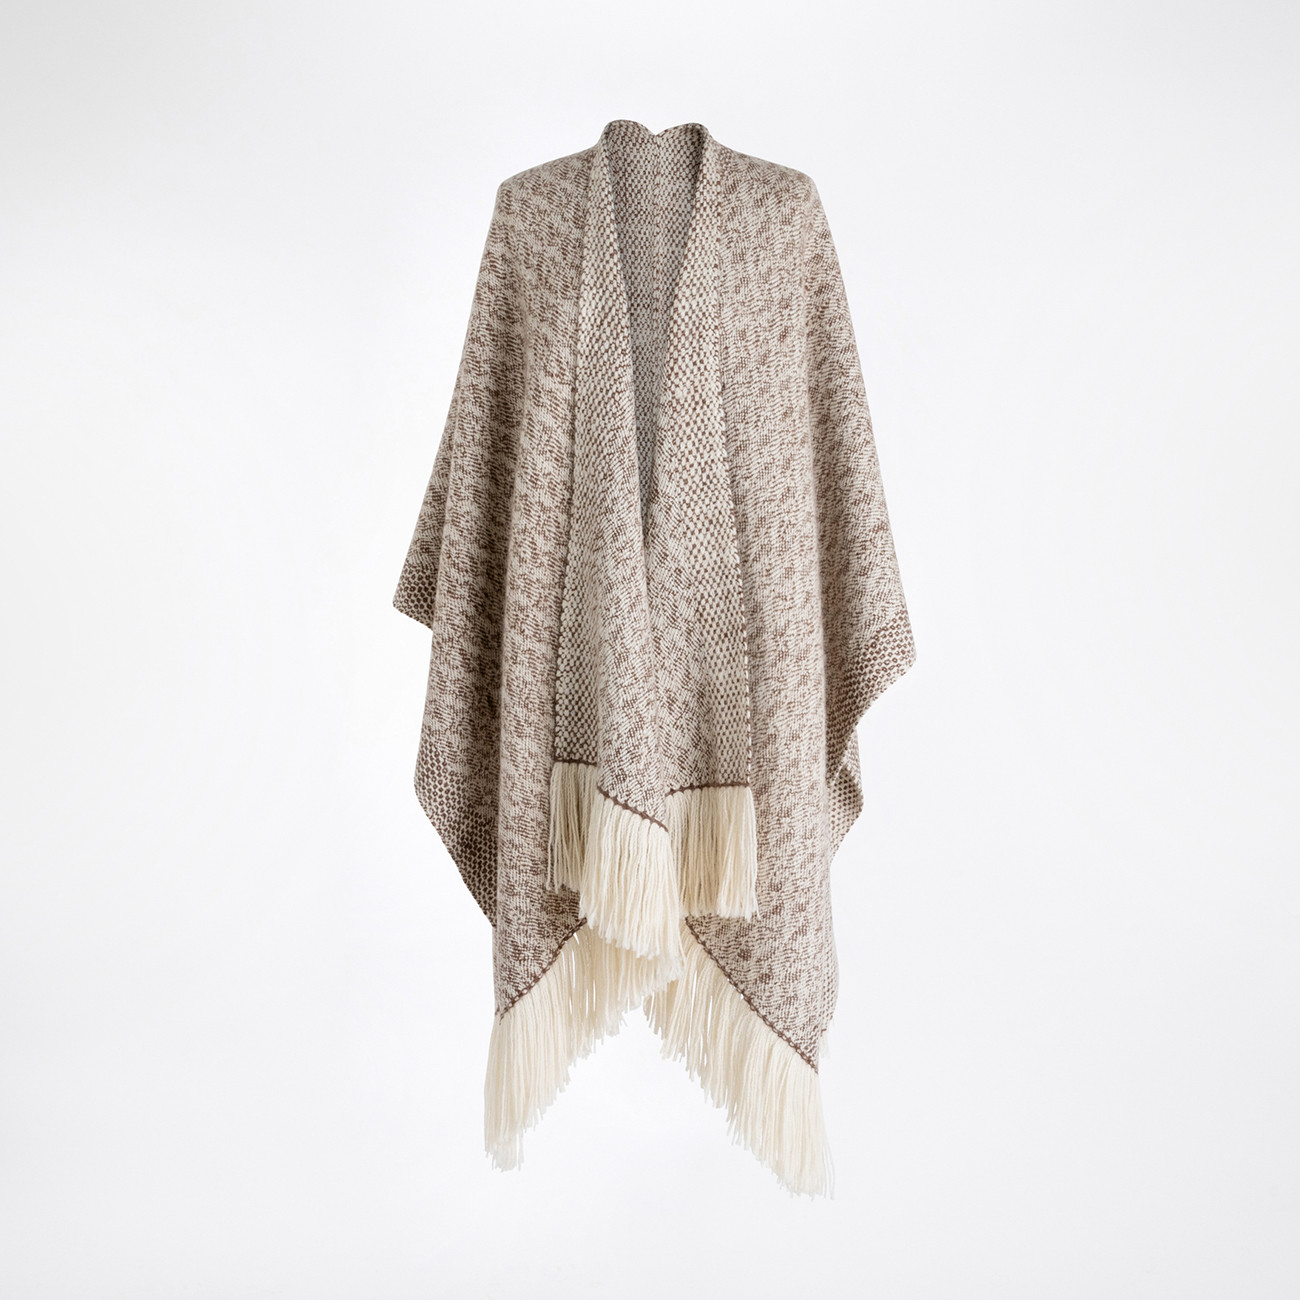 Handwoven Fallen Leaves Blanket Wrap - Natural Chocolate and White Alpaca - 0